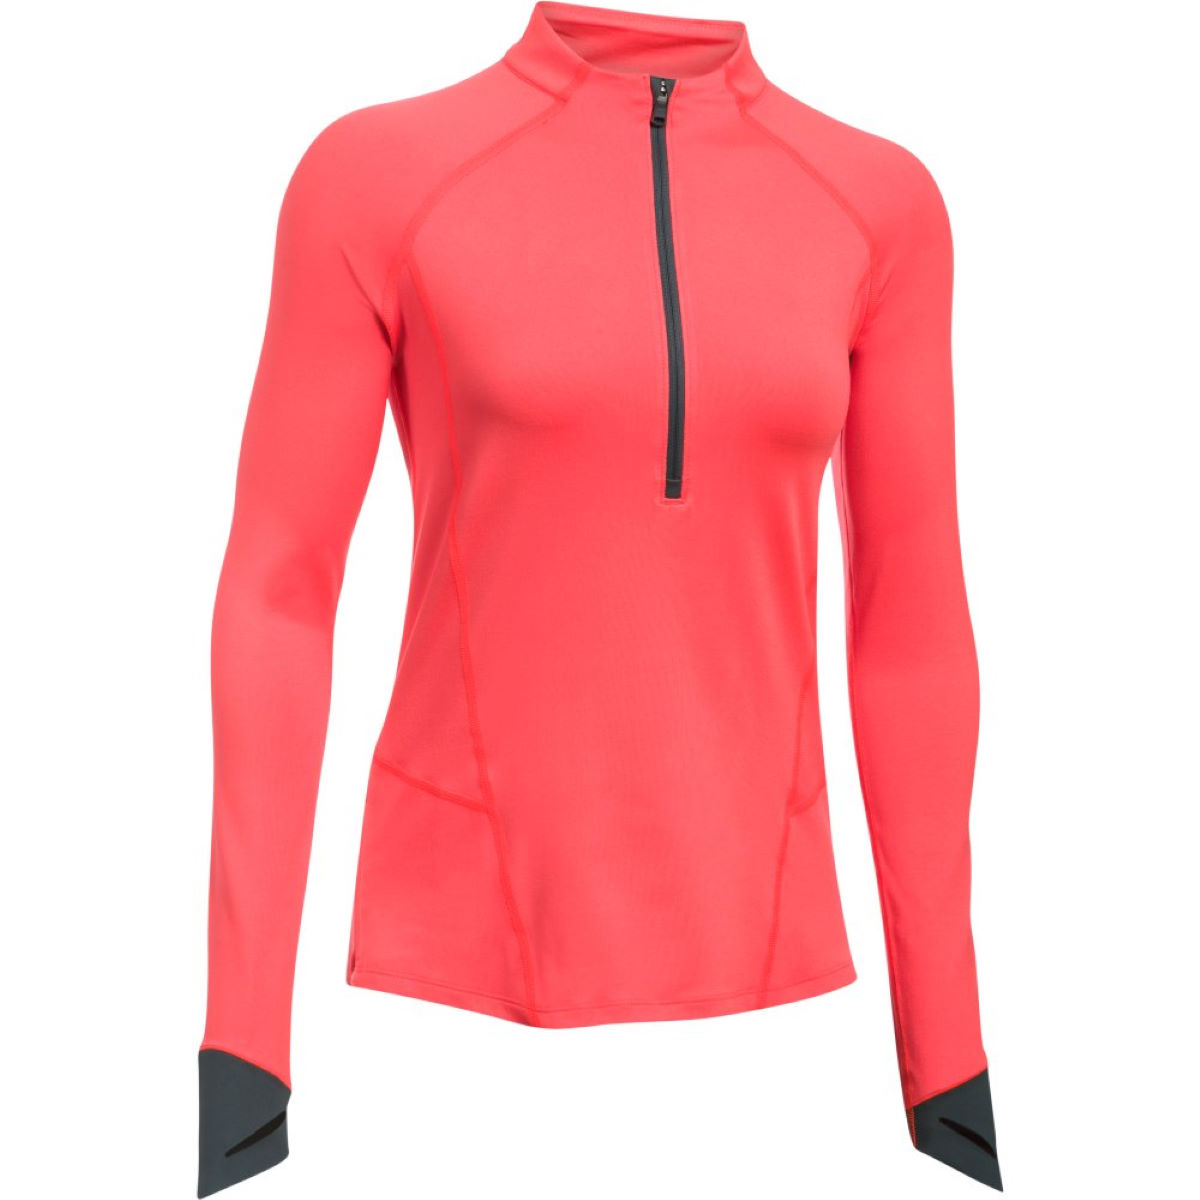 Under Armour Women's Run True Half Zip Top - XS Marathon Red Hauts de running à manches longues